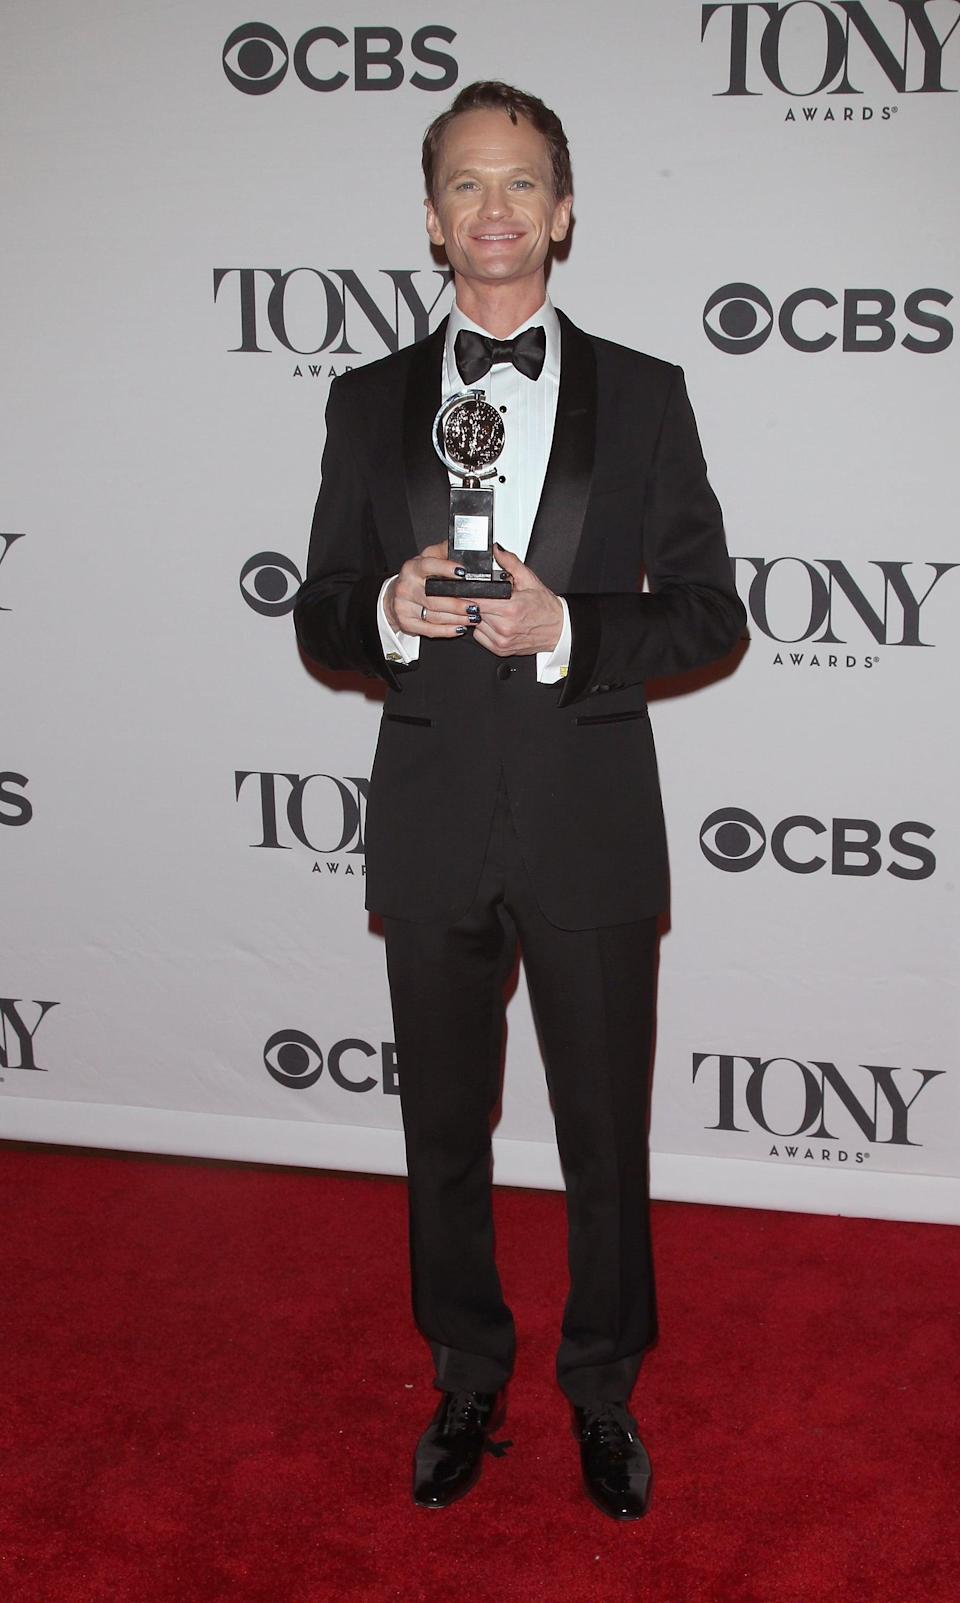 <ul> <li><strong>Has:</strong> Four Emmys for hosting the Tony Awards and guest-starring on <strong>Glee</strong> and a Tony for <strong>Hedwig and the Angry Inch</strong></li> <li><strong>Needs:</strong> A Grammy and an Oscar</li> </ul>